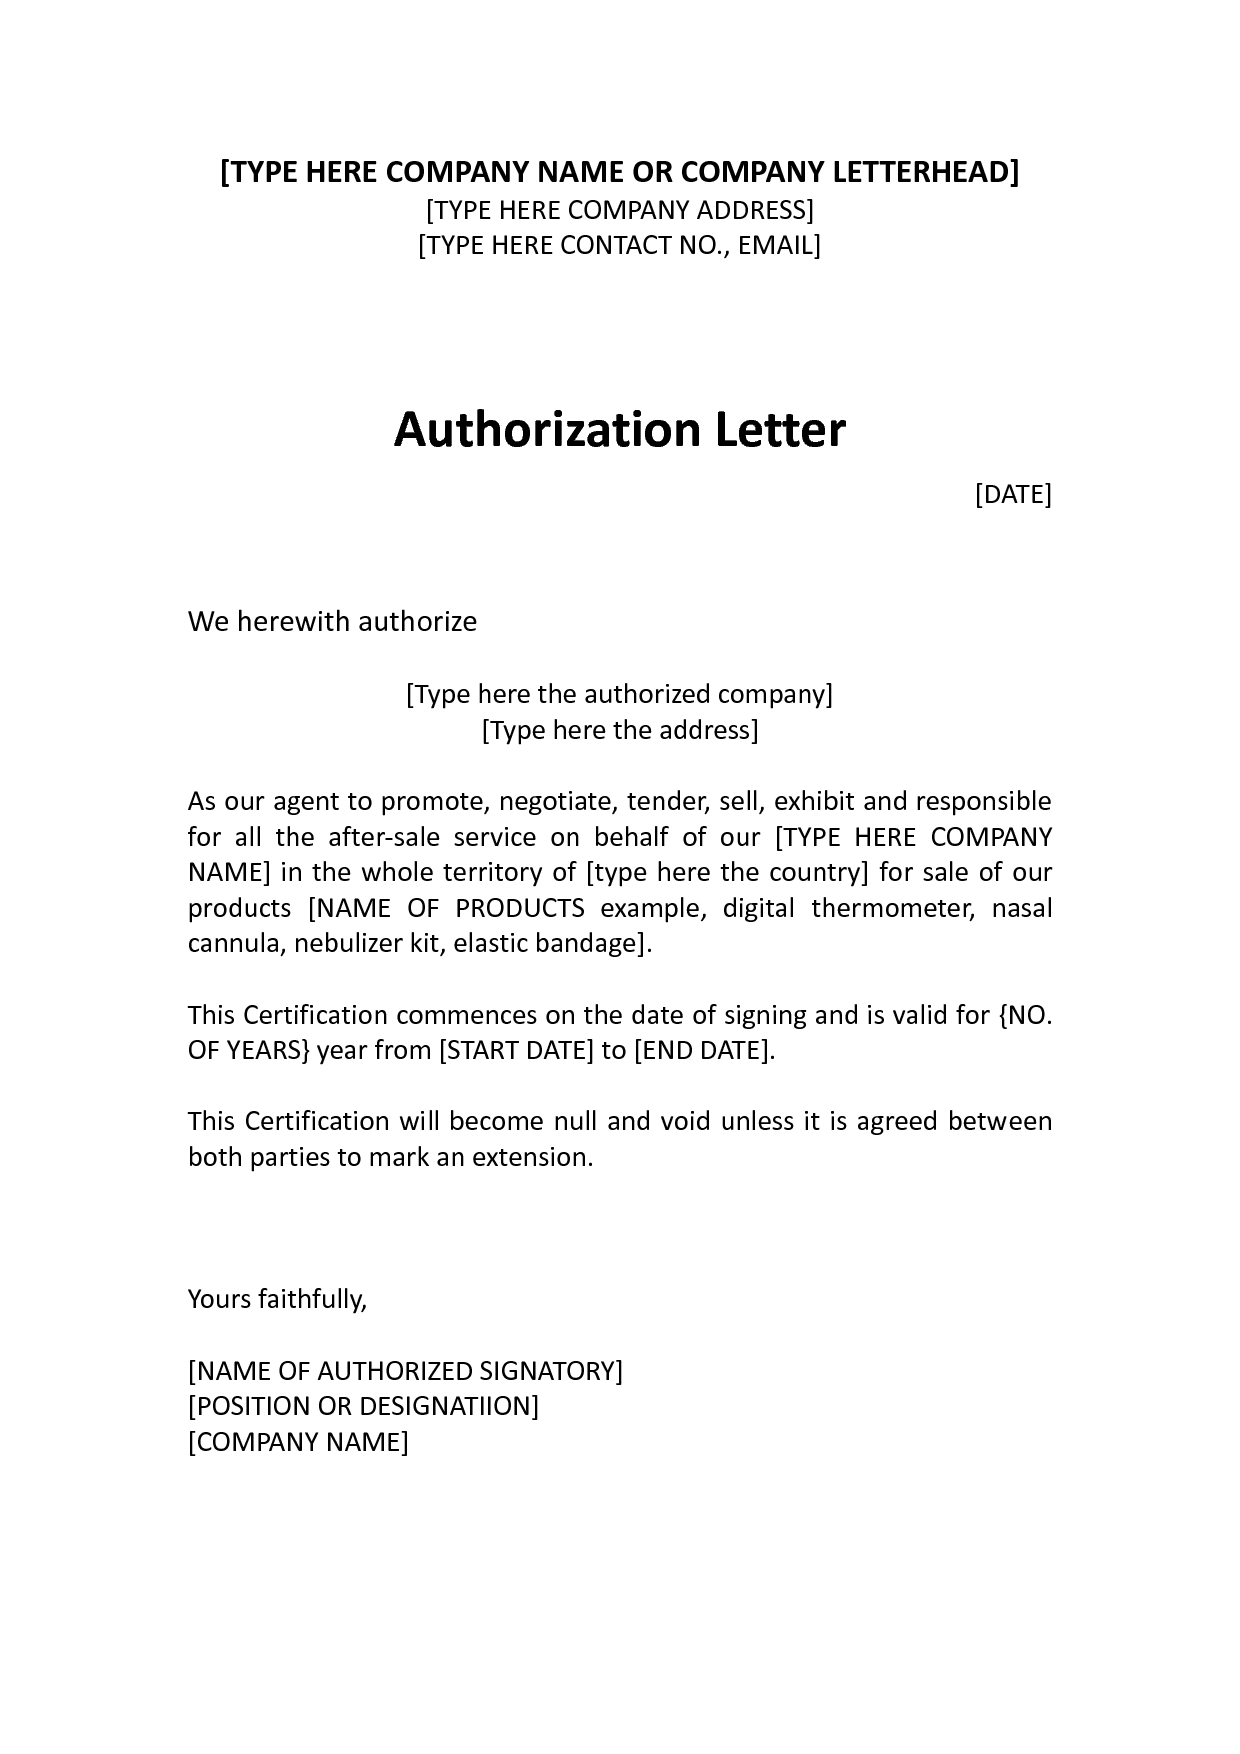 Auto Lien Release Letter Template - Authorization Distributor Letter Sample Distributor Dealer